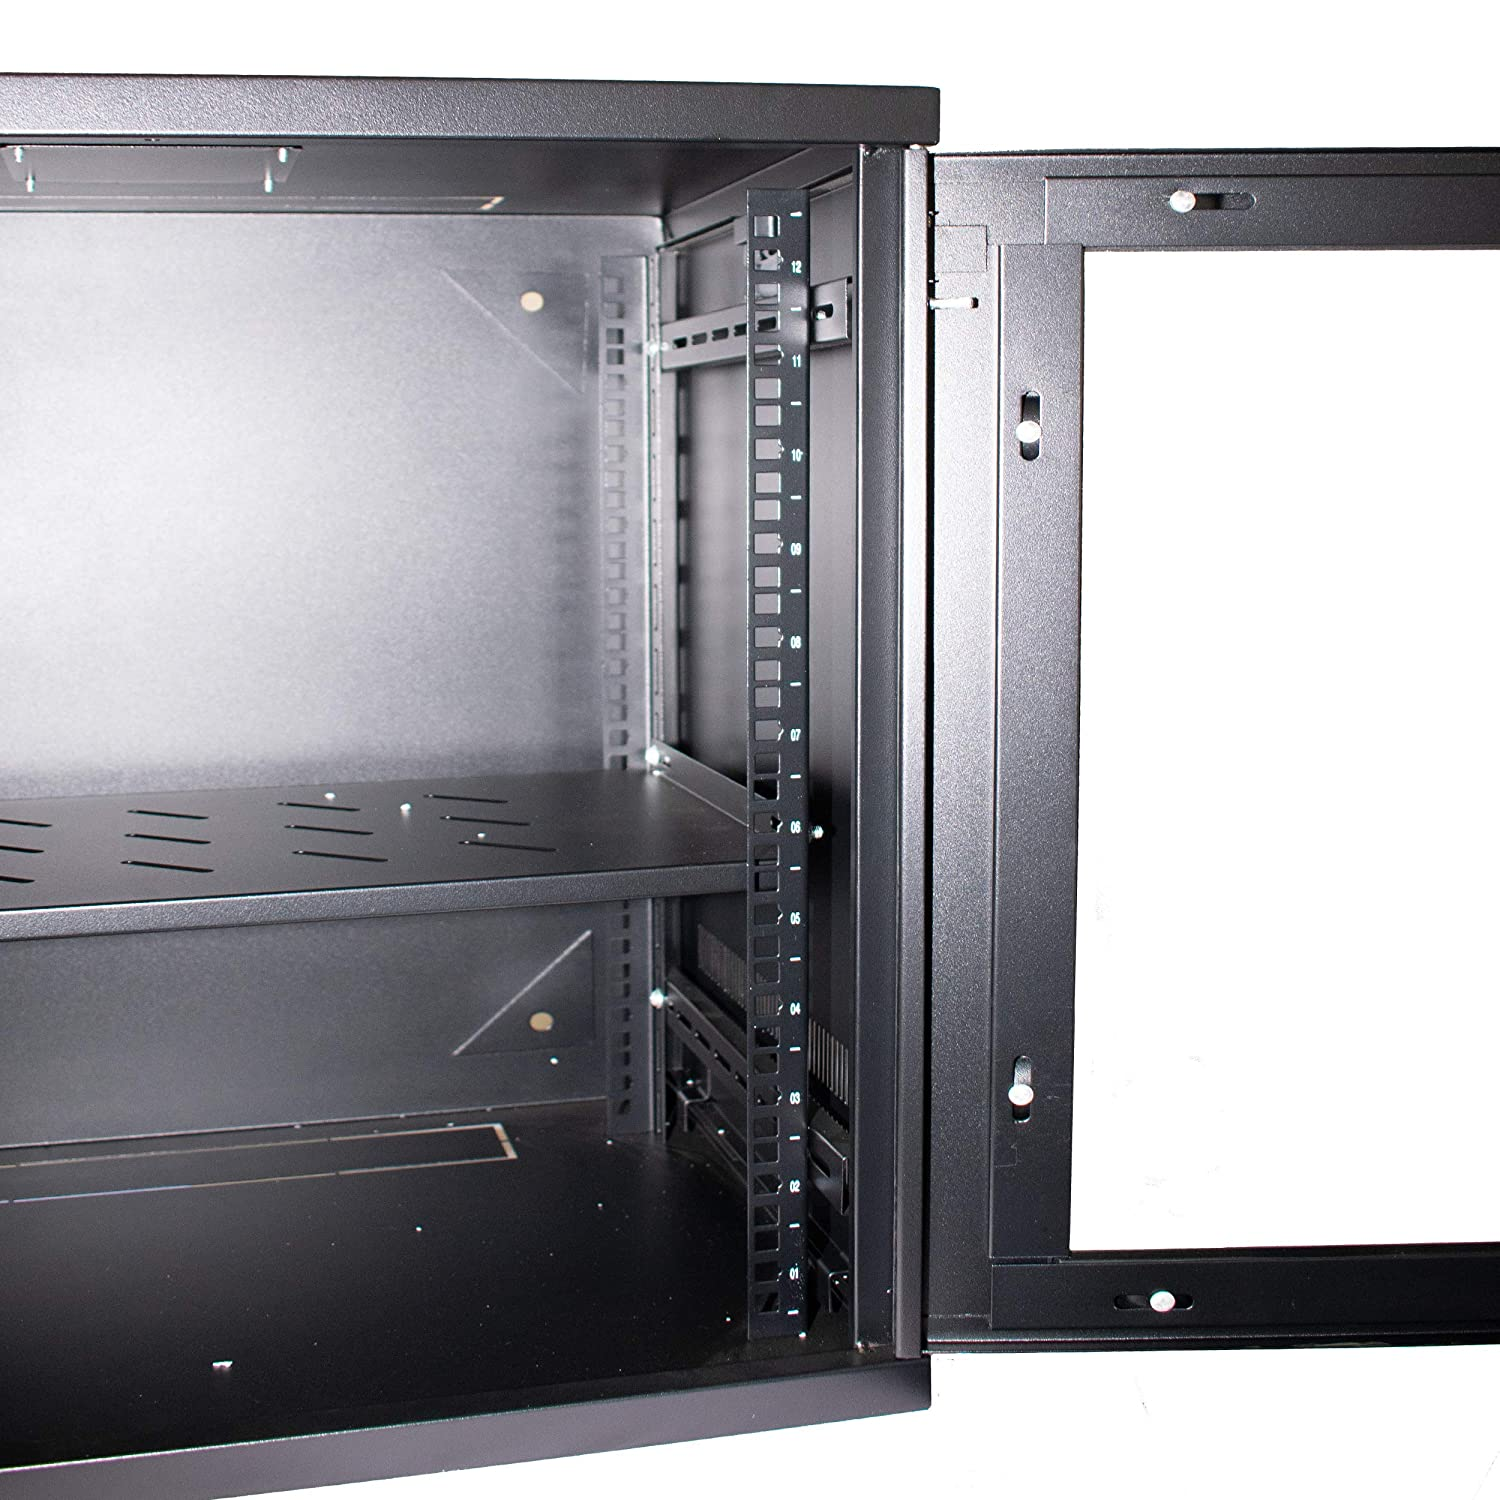 Black Lockable Glass Door//Removable Sides//Multiple Cable Entry Points 400mm deep I-CHOOSE LIMITED 6U 19 Wallmounting Rack Cabinet